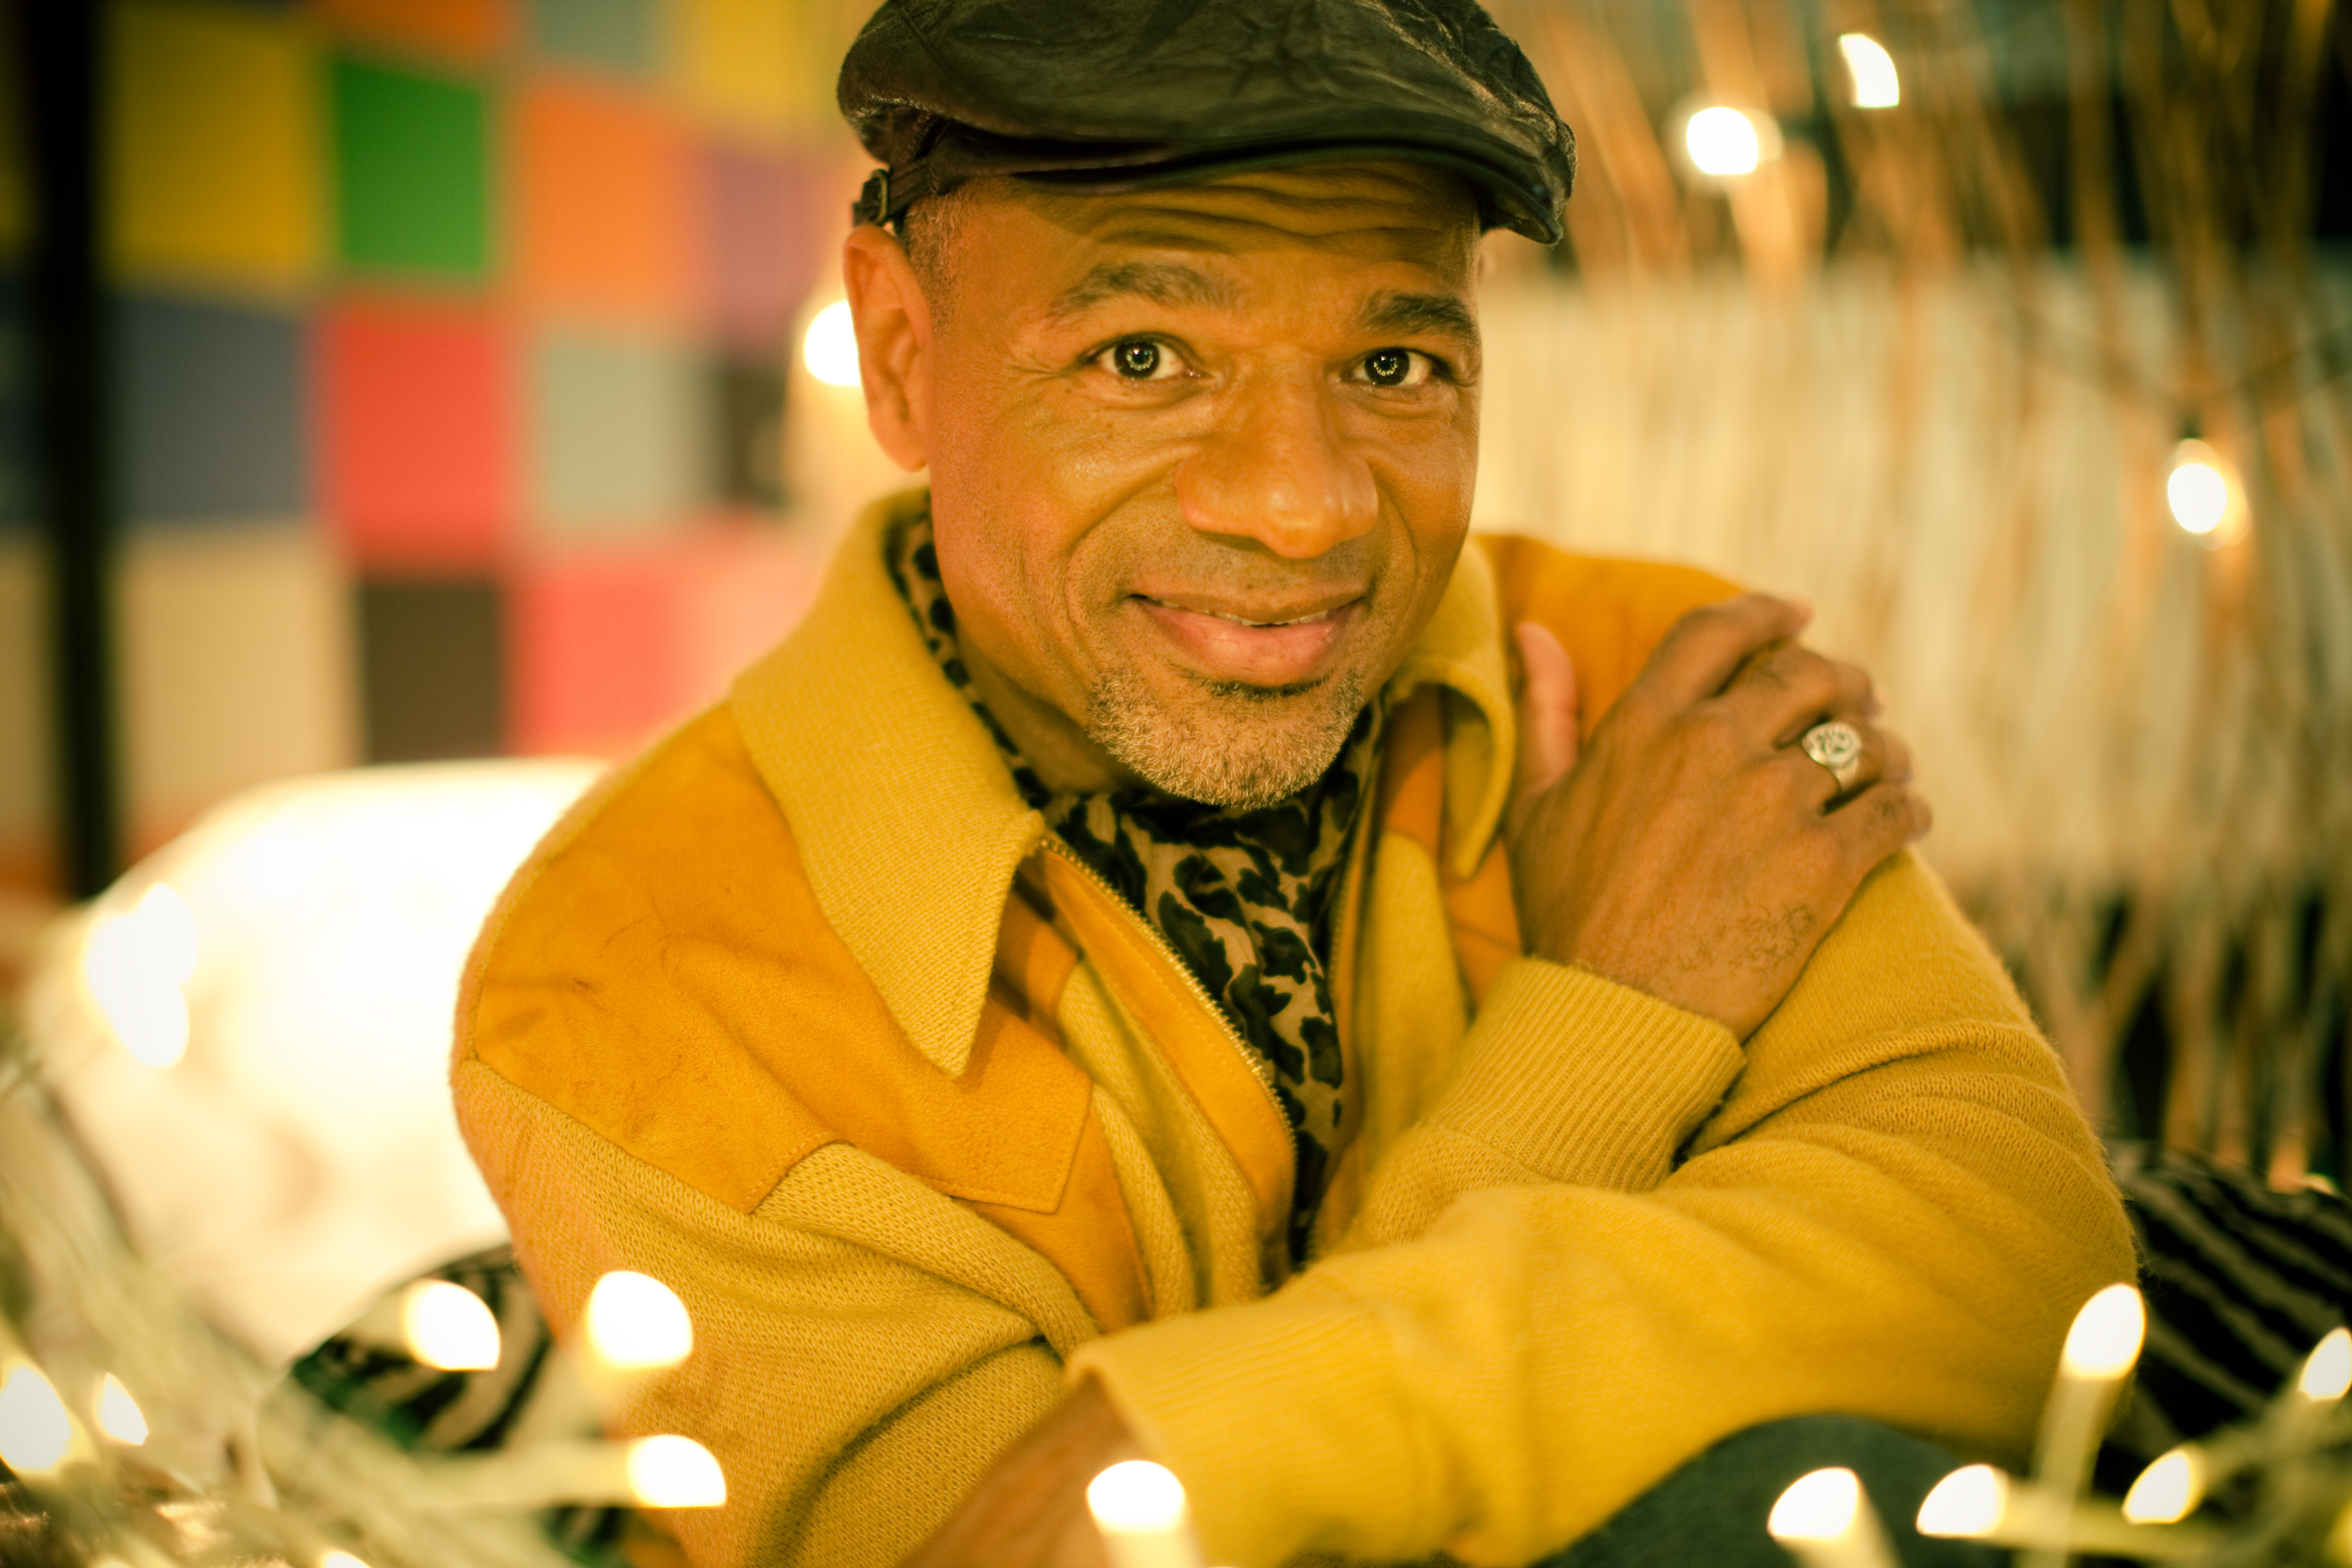 Kirk-Whalum-in-gold-sweater.jpg